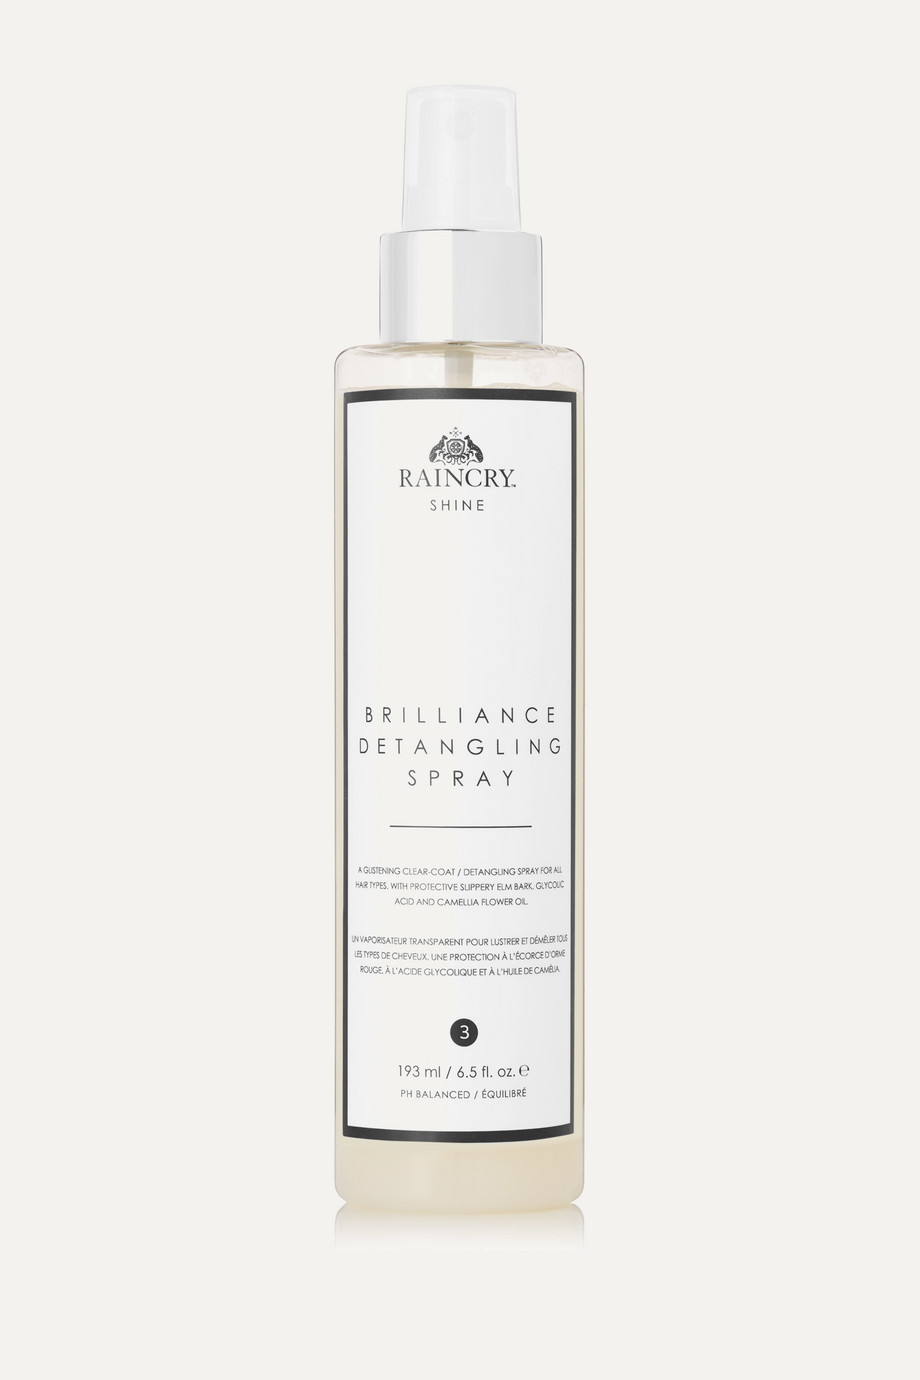 RAINCRY Brilliance Detangling Spray, 193ml